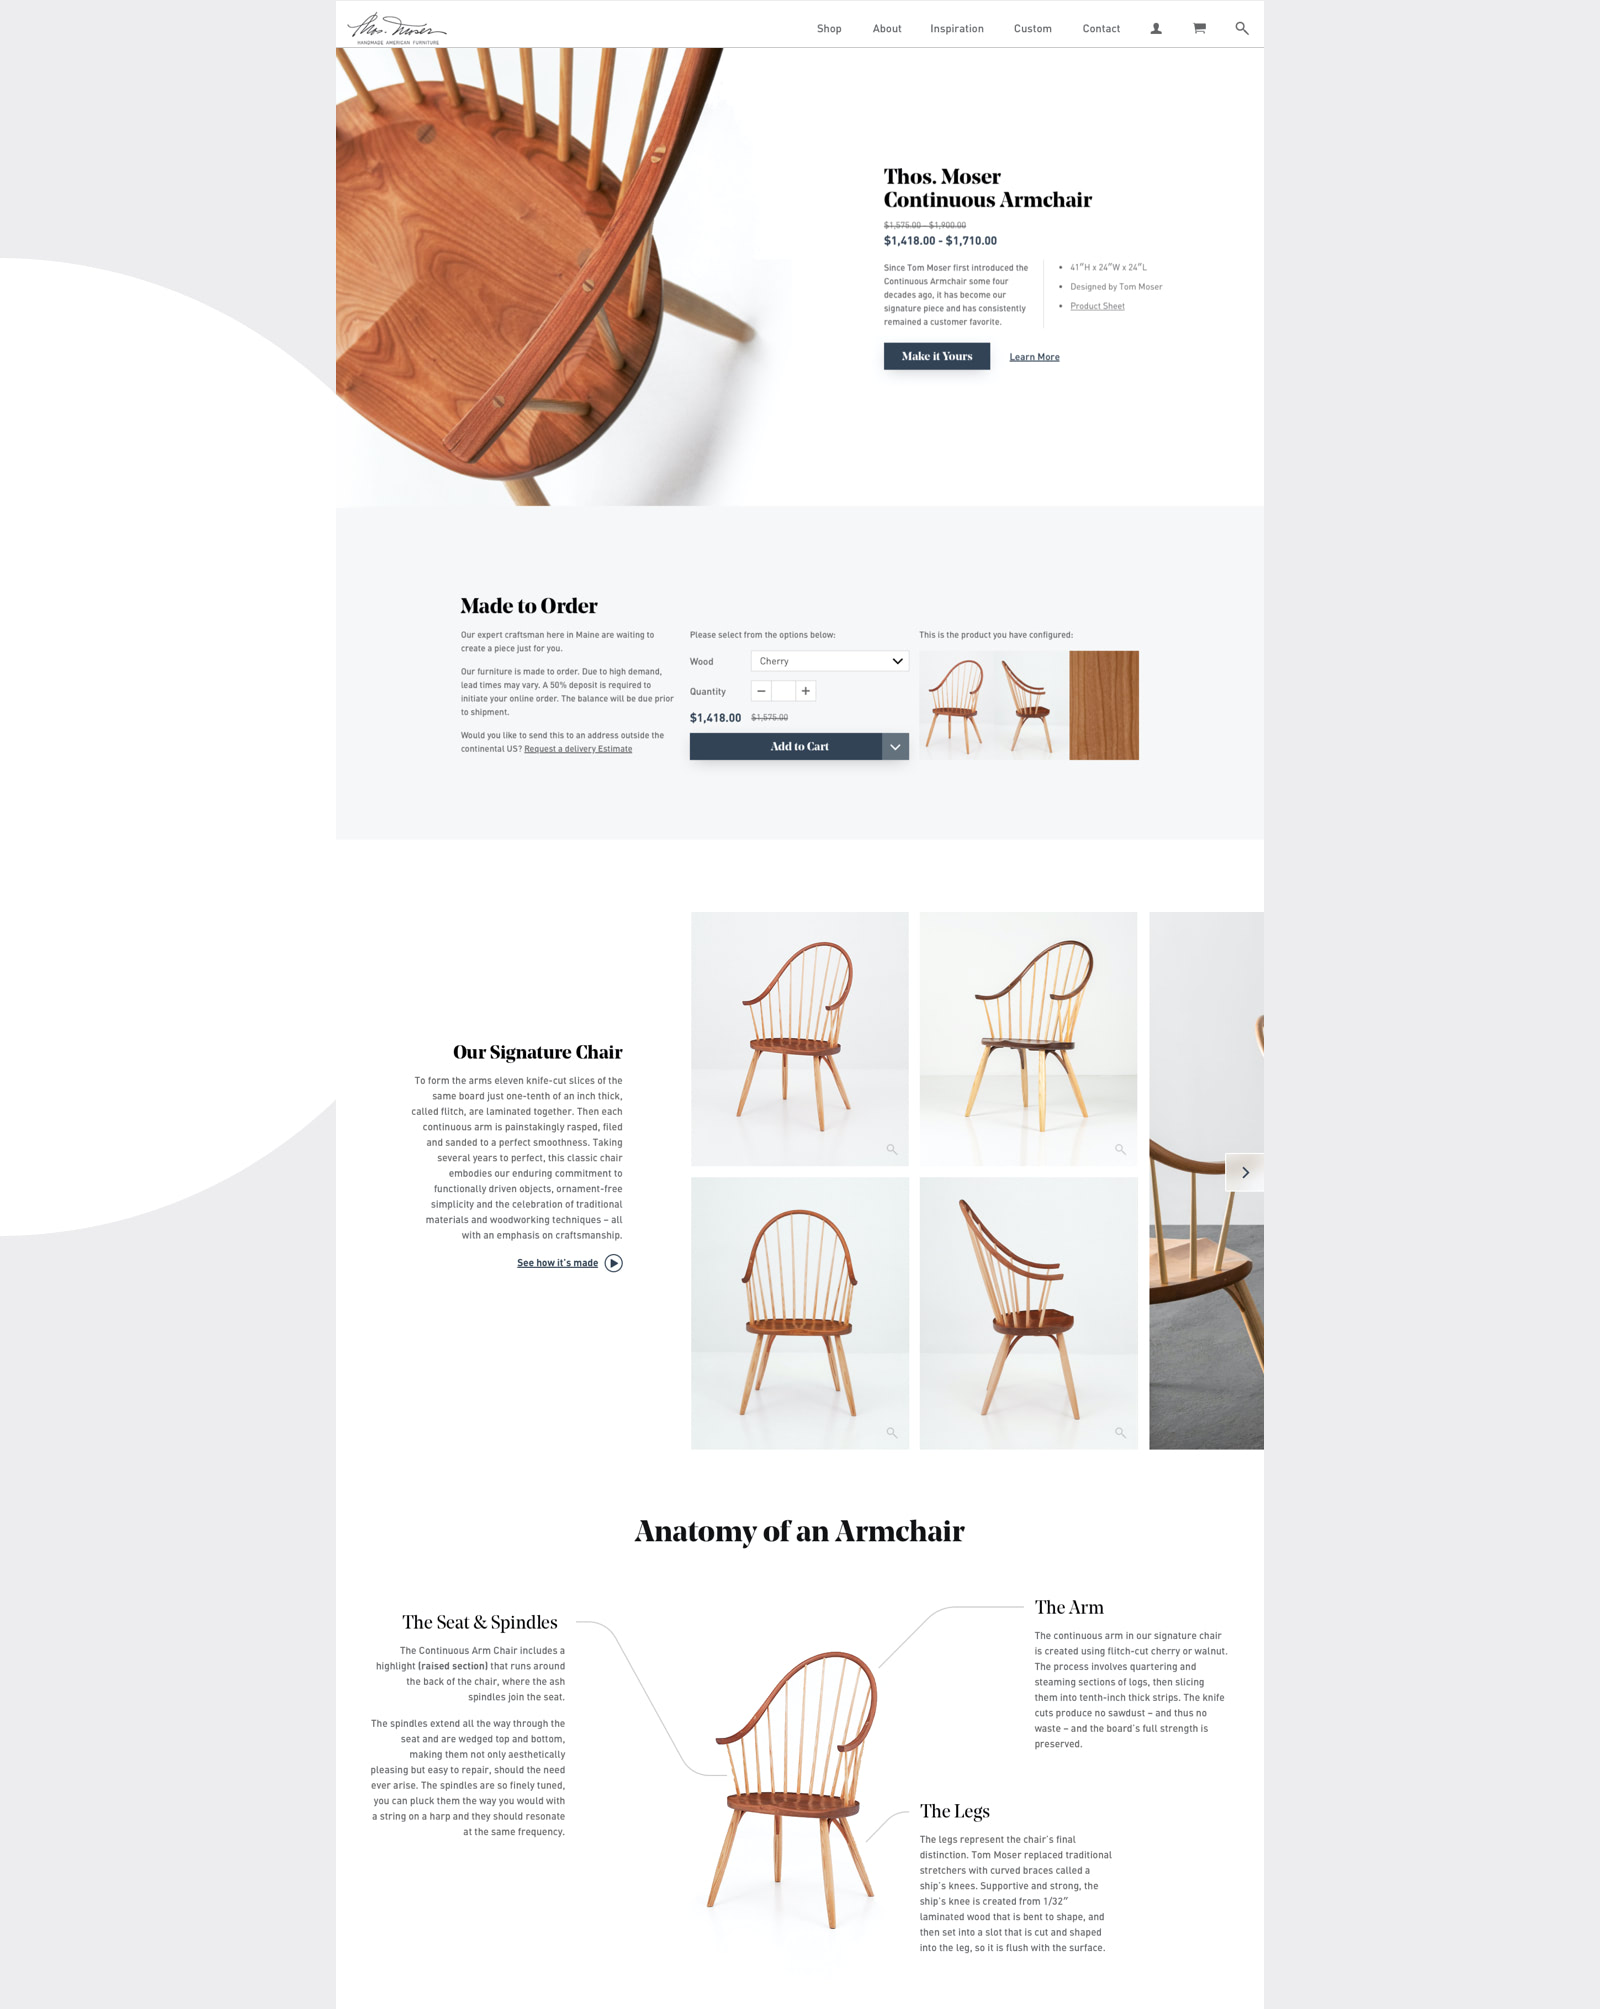 Thos Moser website product page design featuring the Continuous Armchair, backstory of how it was made and the anatomy of its construction.